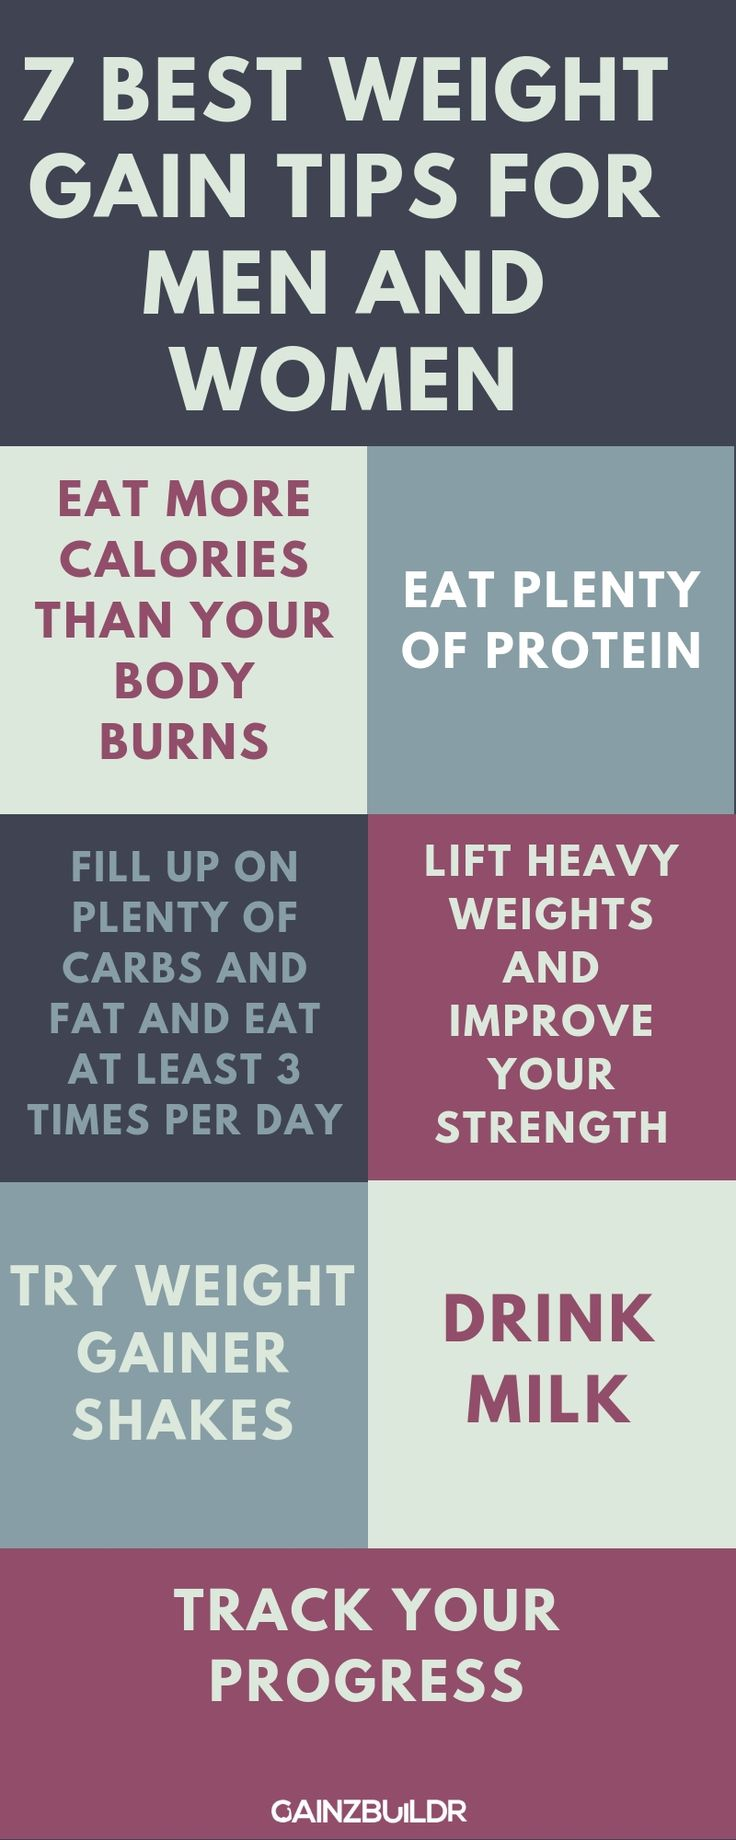 7 Best Weight Gain Tips For Men And Women